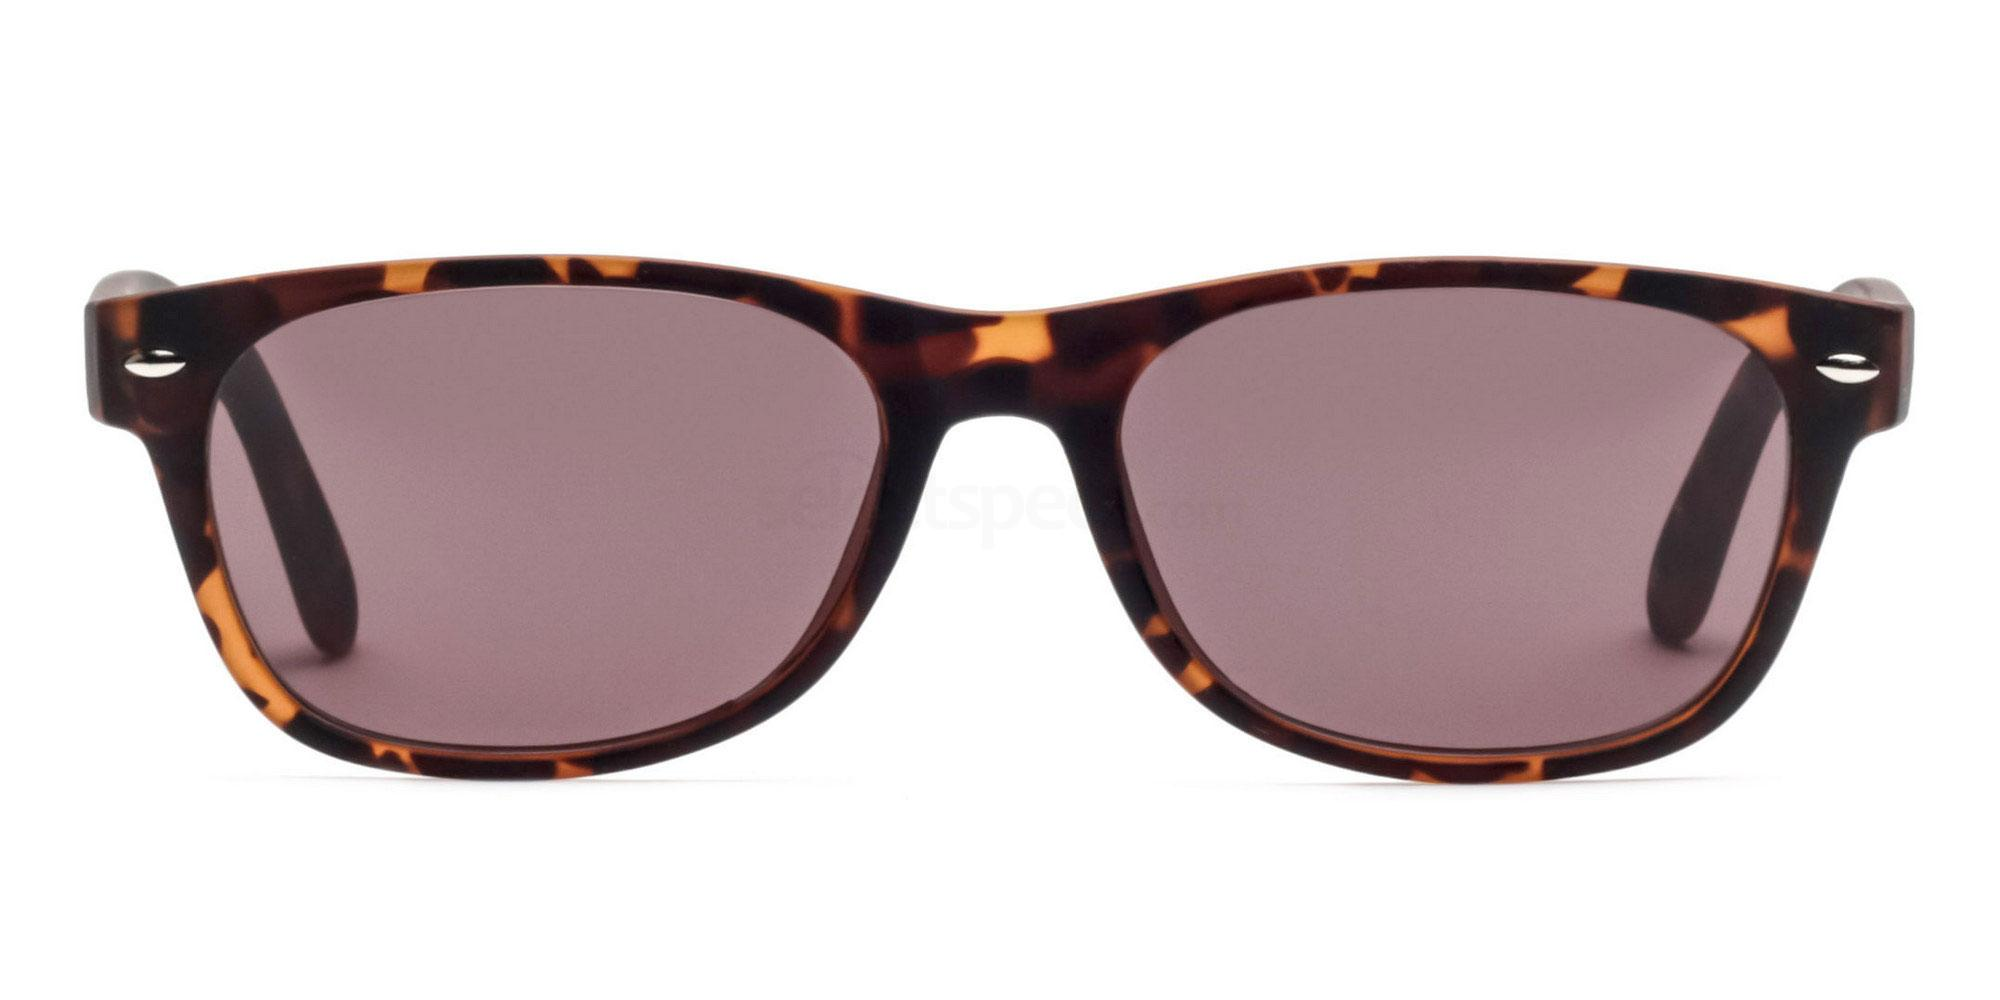 Tortoise S8122 - Tortoise (Sunglasses) Sunglasses, Savannah